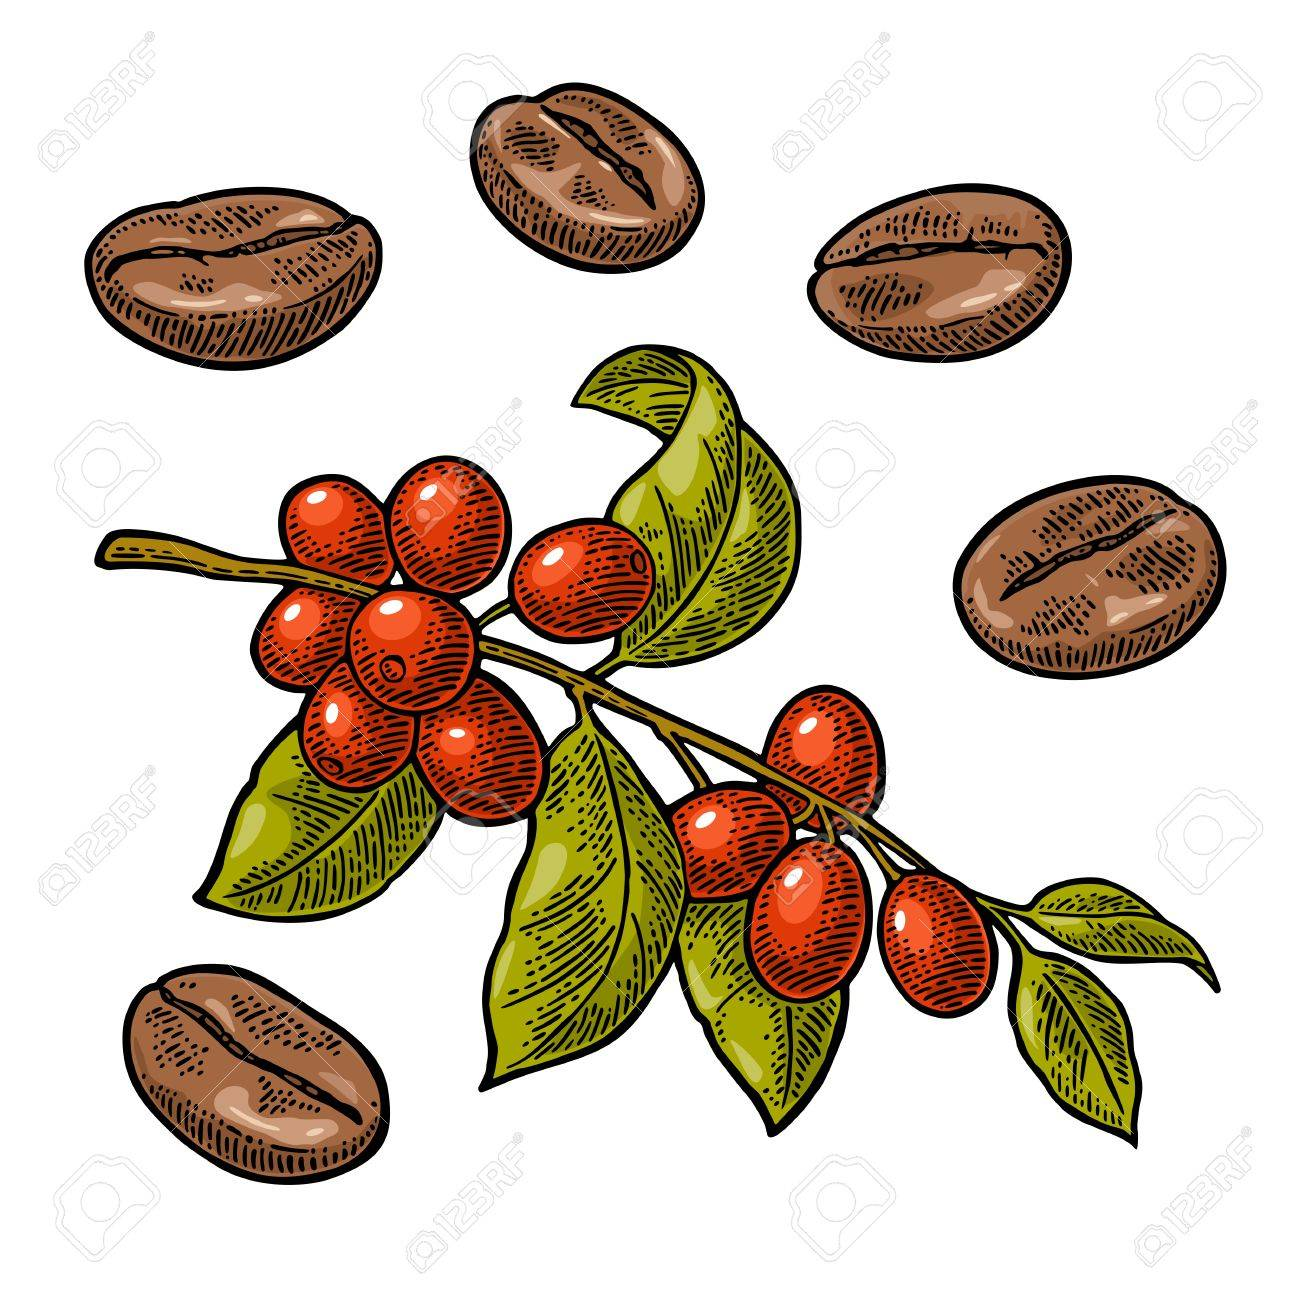 Coffee bean, branch with leaf and berry. Hand drawn vector vintage engraving color illustration on white background. - 86204939